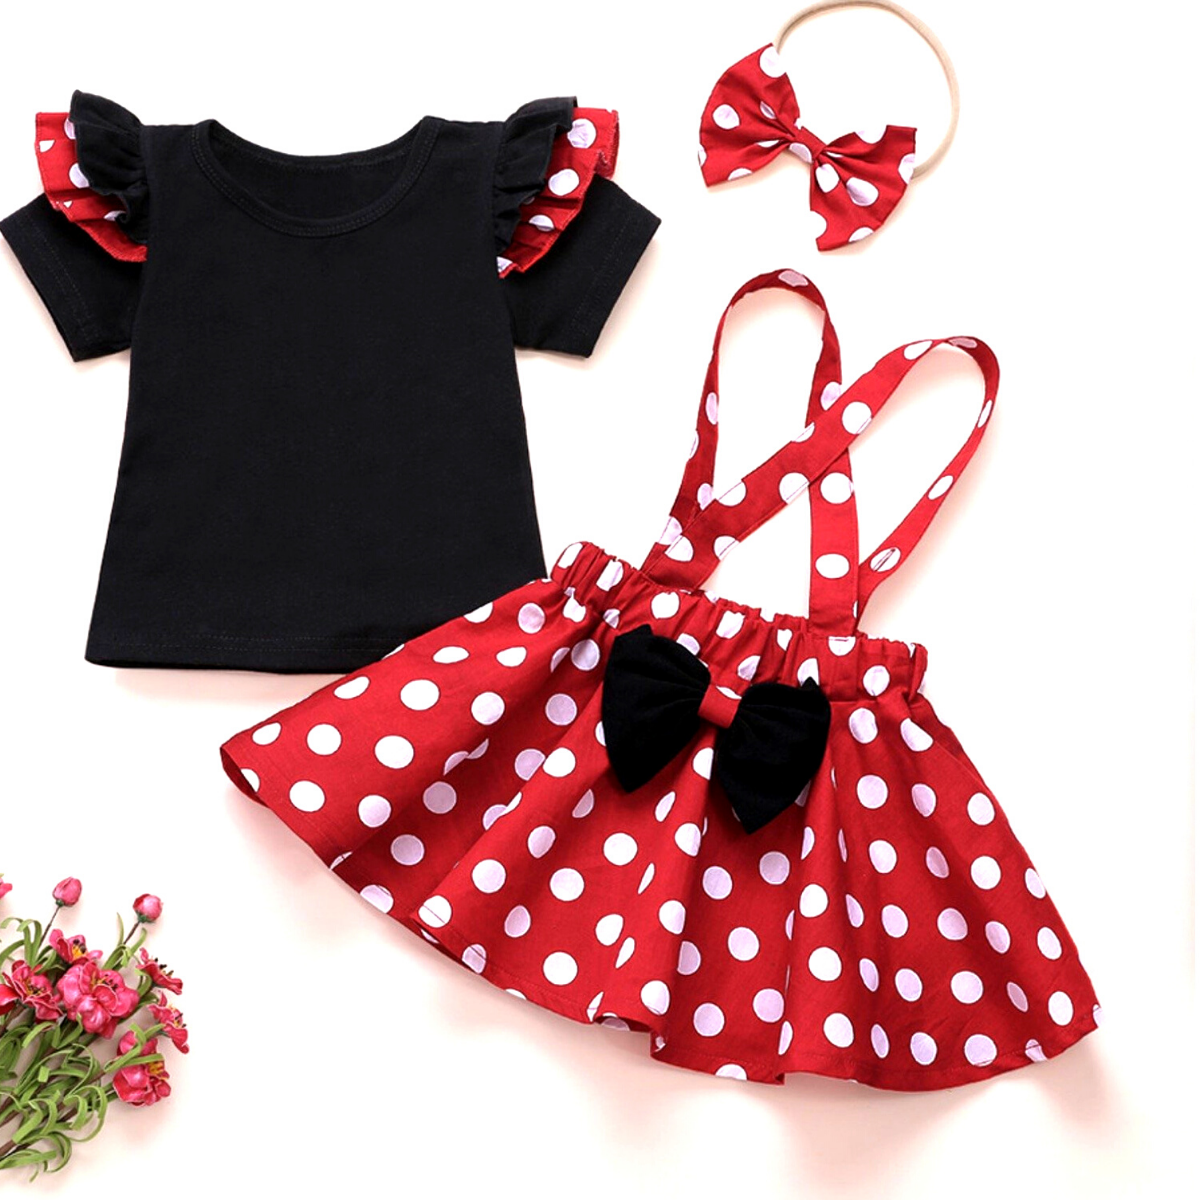 3-piece  Baby / Toddler Solid Flutter-sleeve Top and Polka Dots Overall Skirt Set